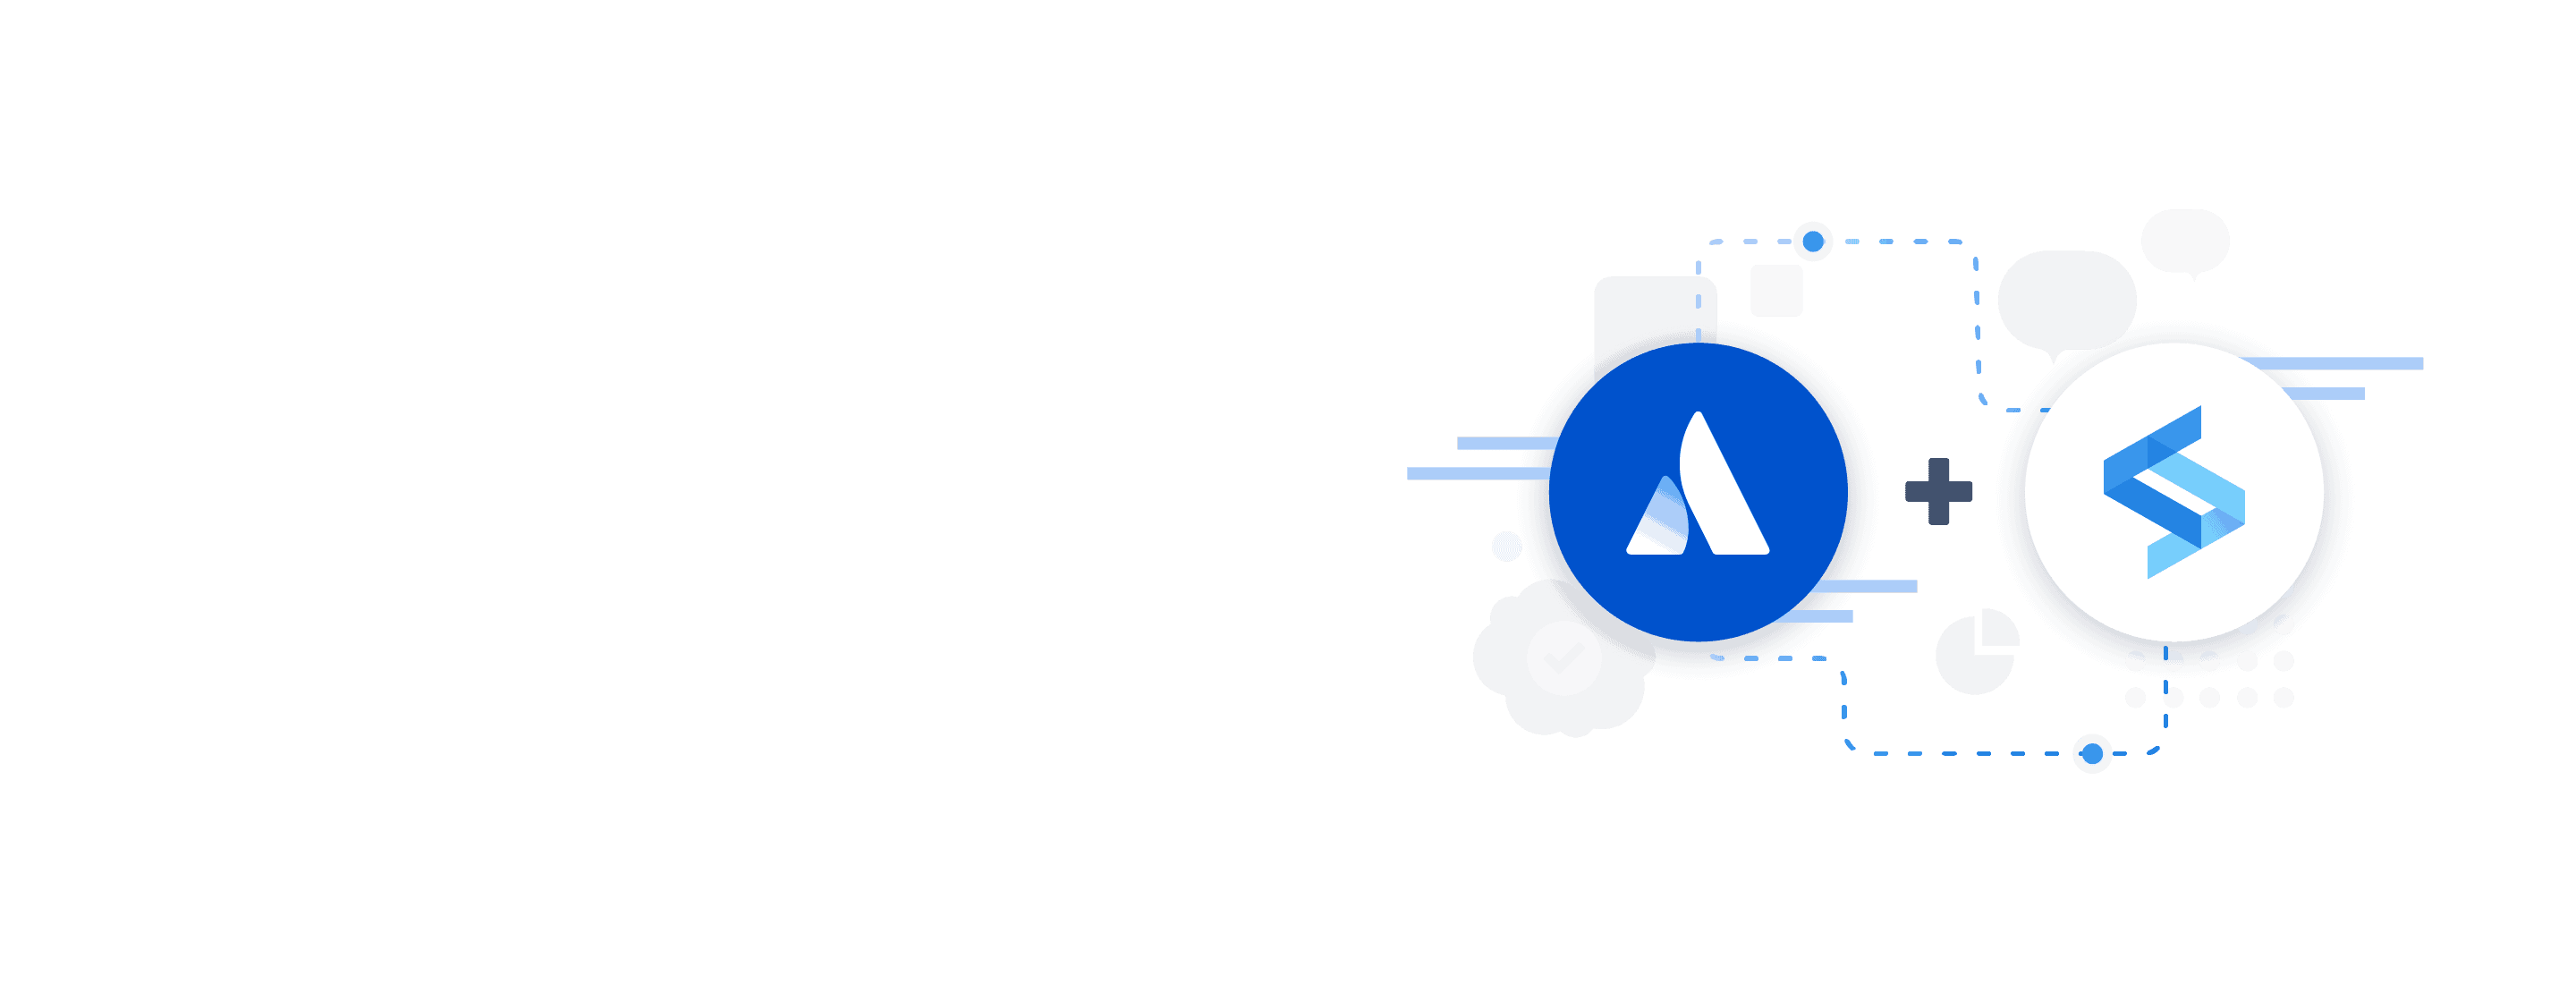 atlassian-open-devops